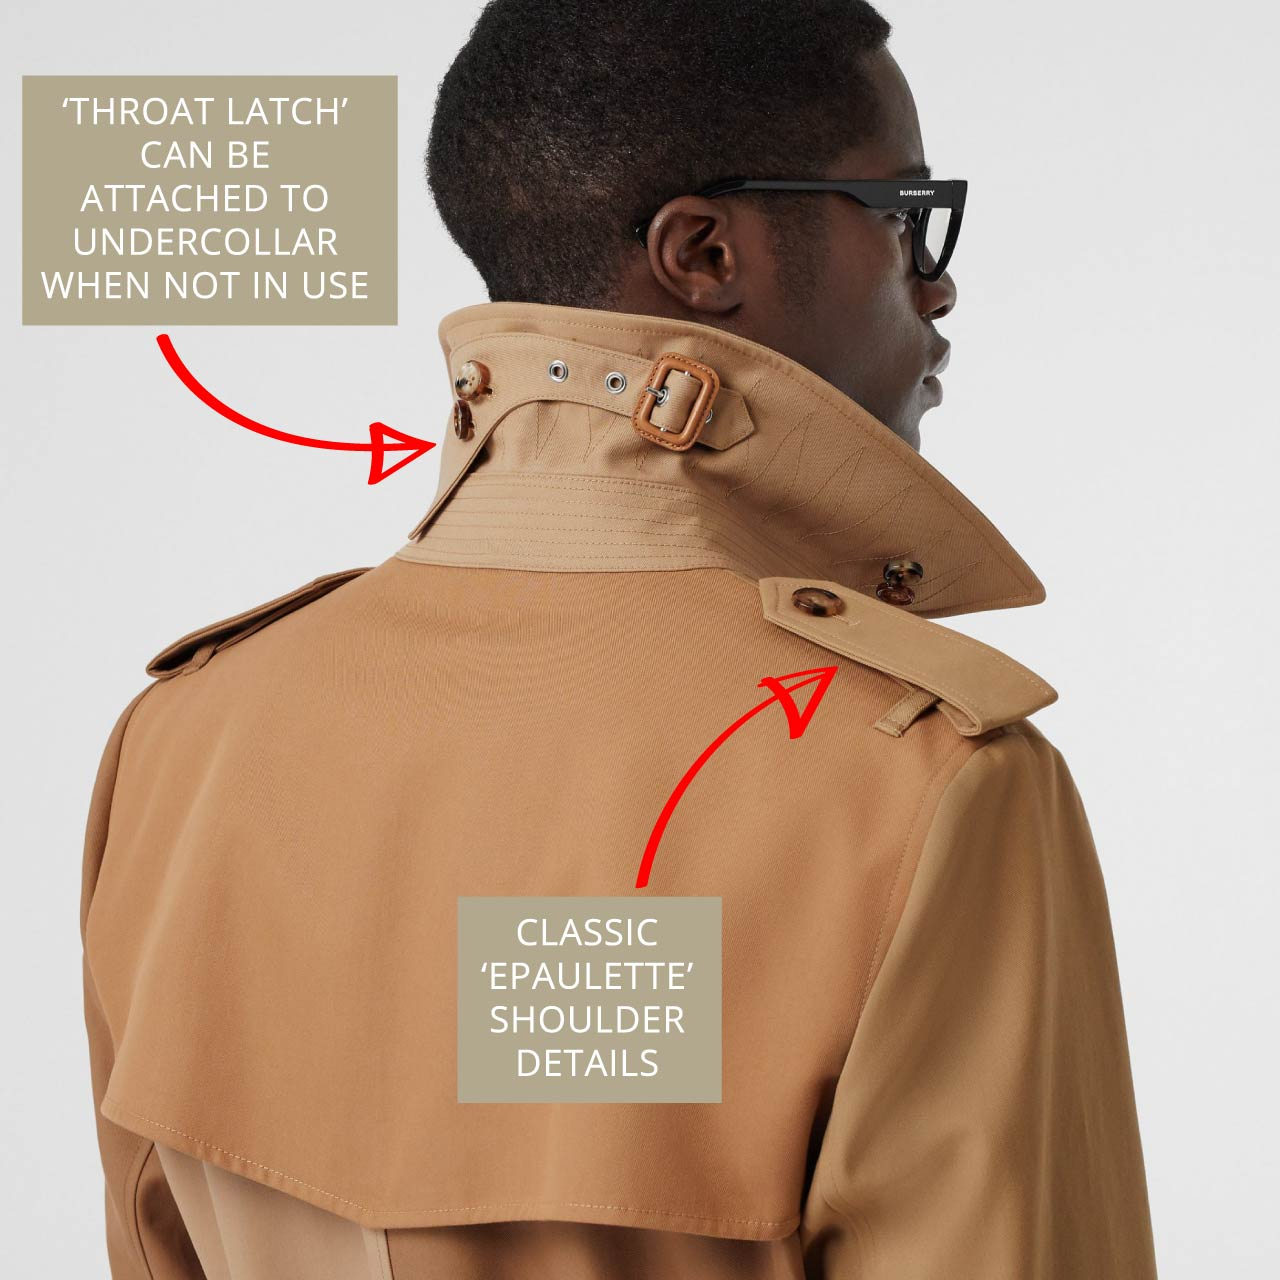 Burberry Trench Coat Details| The Cutting Class. Throat latch attached to collar when not in use. Epaulette shoulder details.